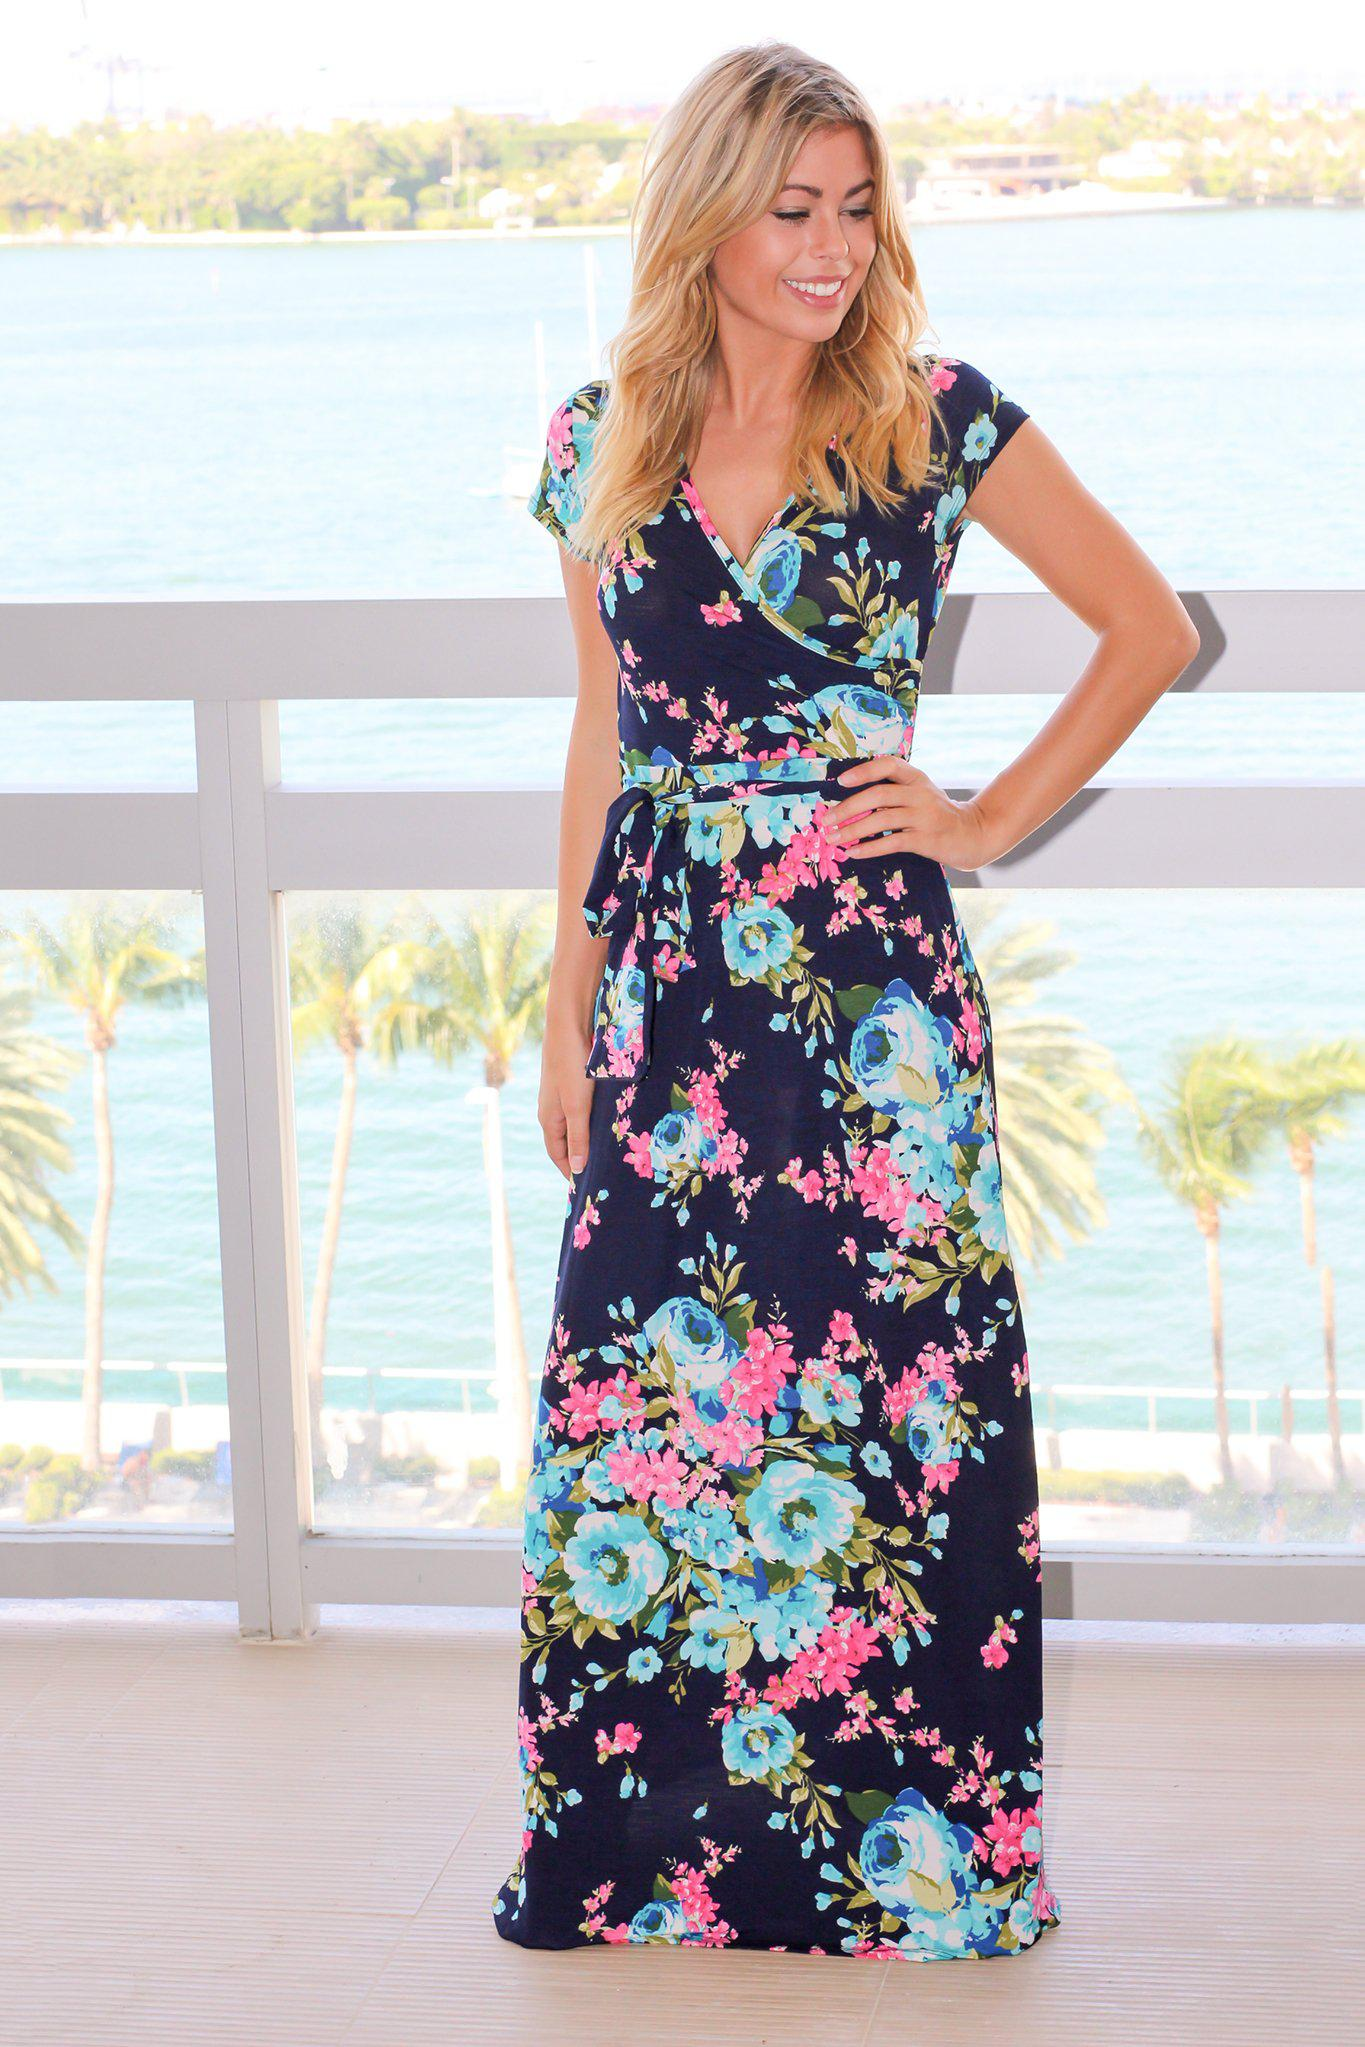 36bb811a133 Navy and pink floral maxi dress maxi dresses saved the dress jpg 1365x2047  Pink and navy